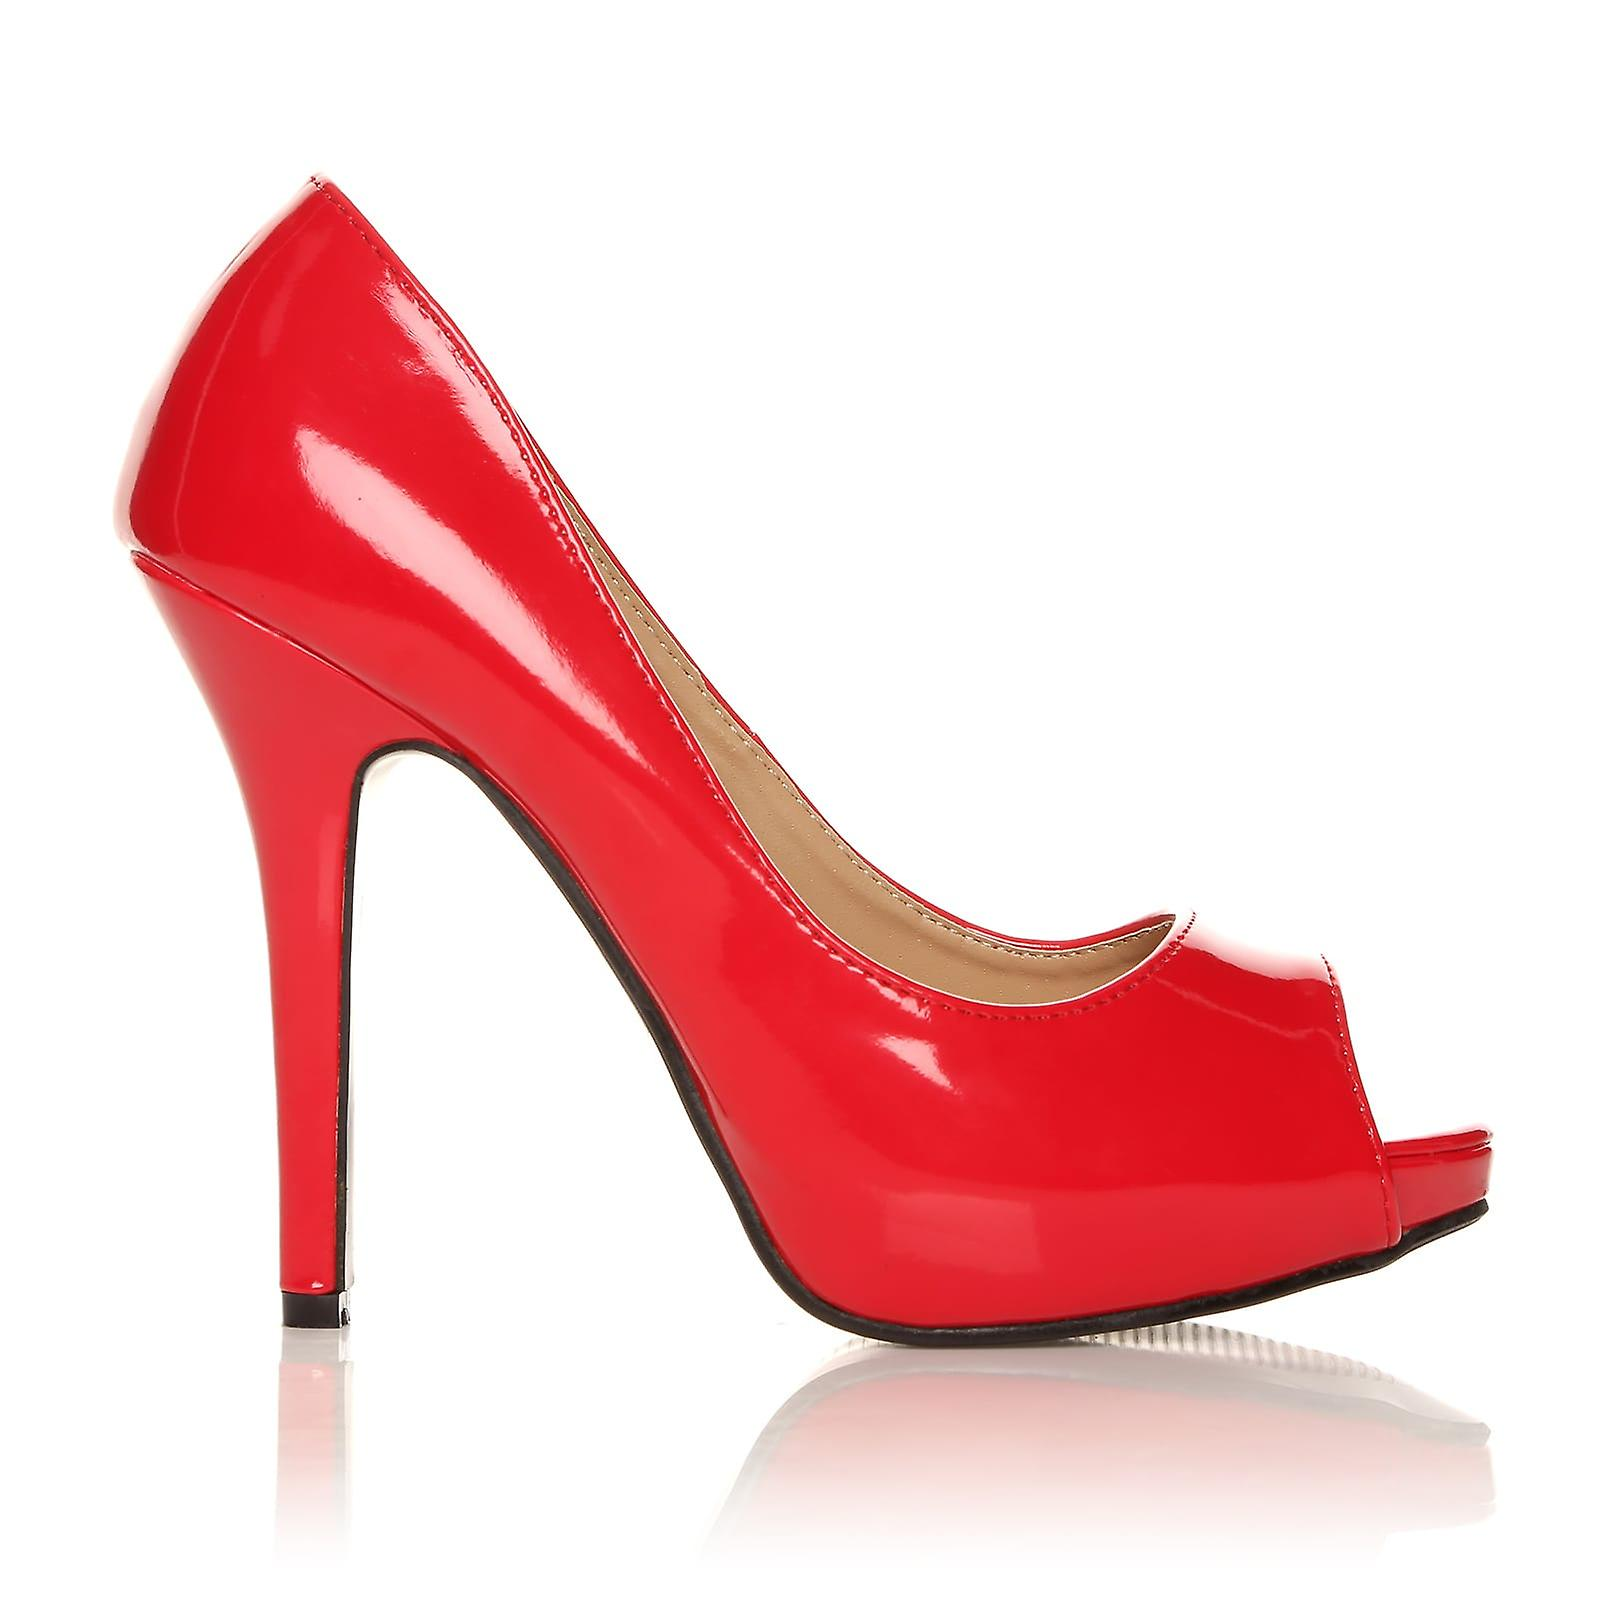 TIA Red Patent PU Leder Stiletto High Heel-Plattform Peep Toe Schuhe